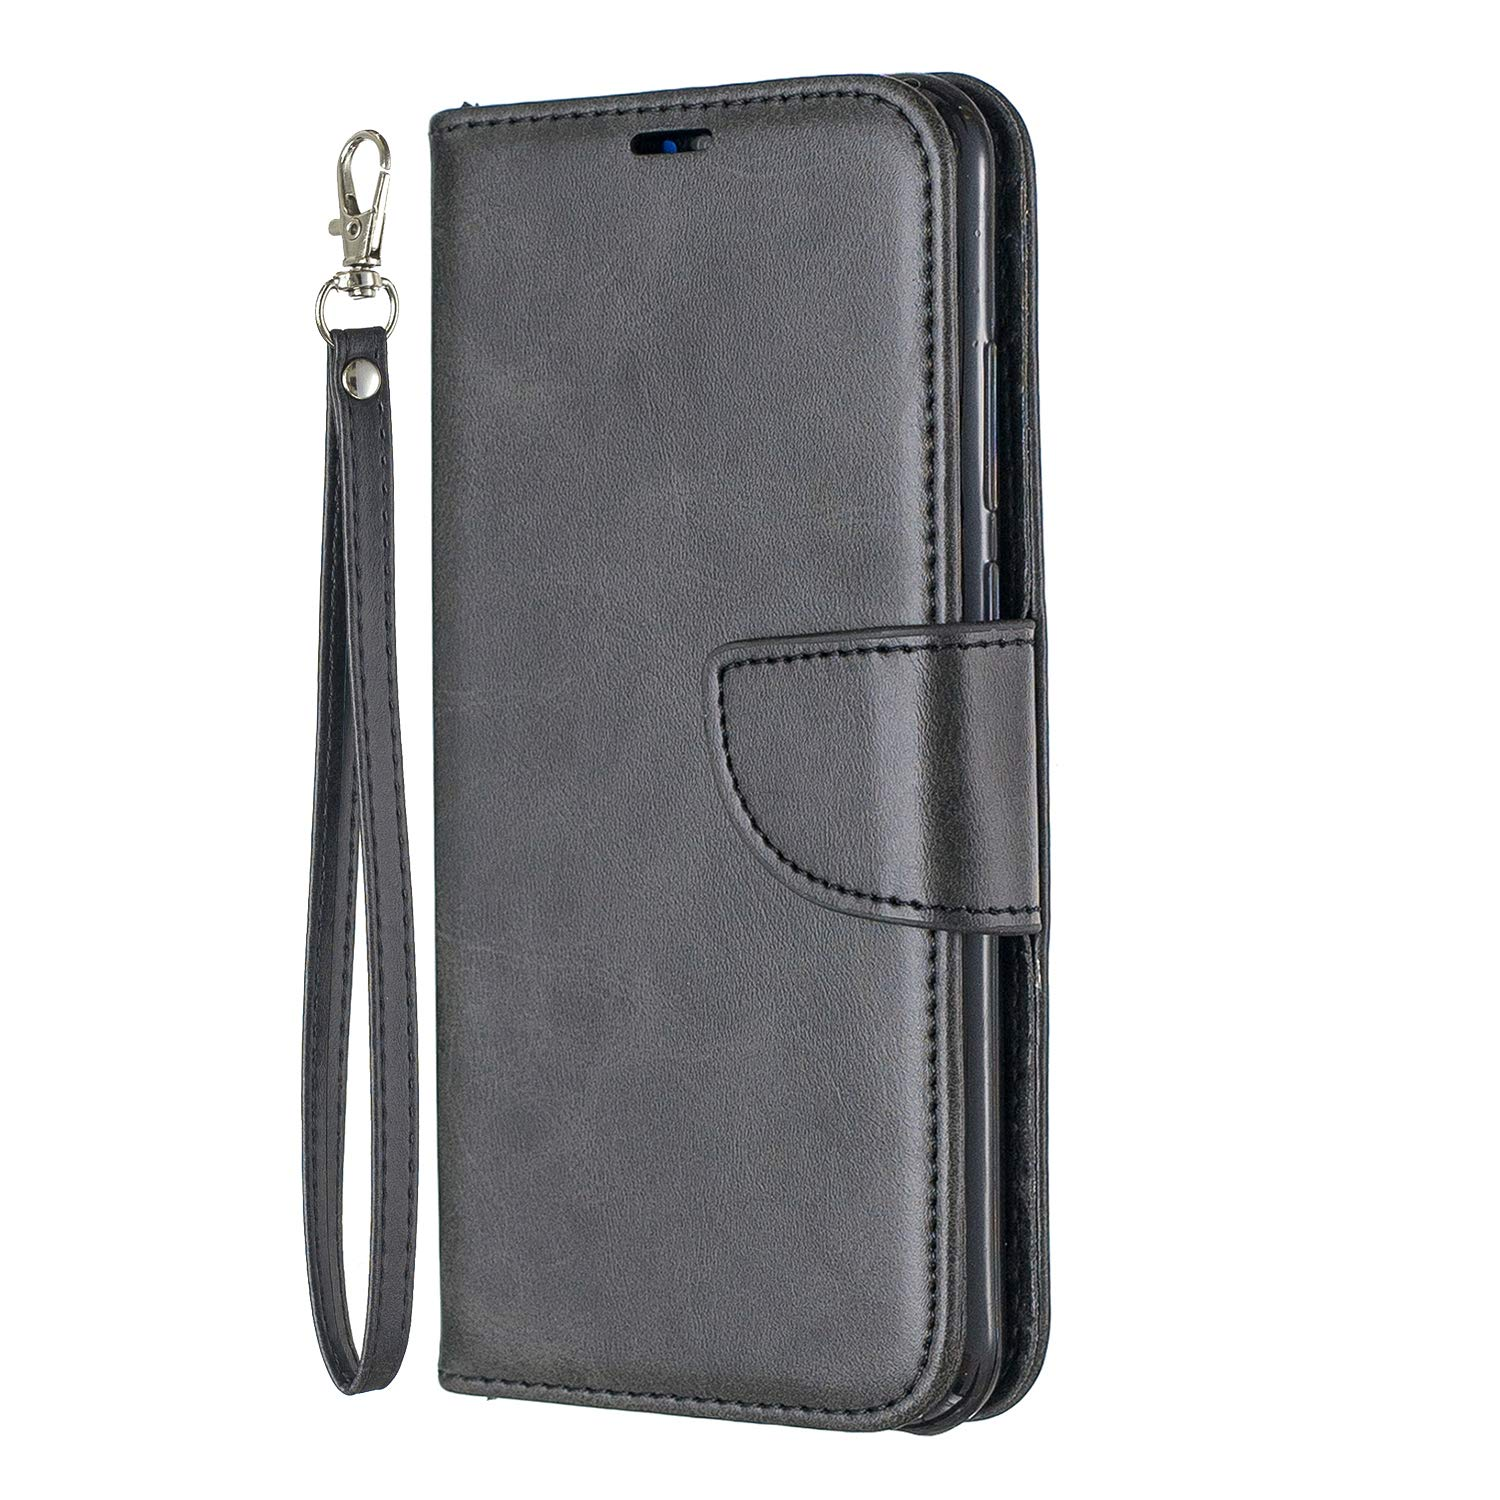 innovative design 2df86 b3fc7 Amazon.com: Lomogo Huawei Y6 2019/Honor 8A/Y6 Pro 2019 Case Leather ...